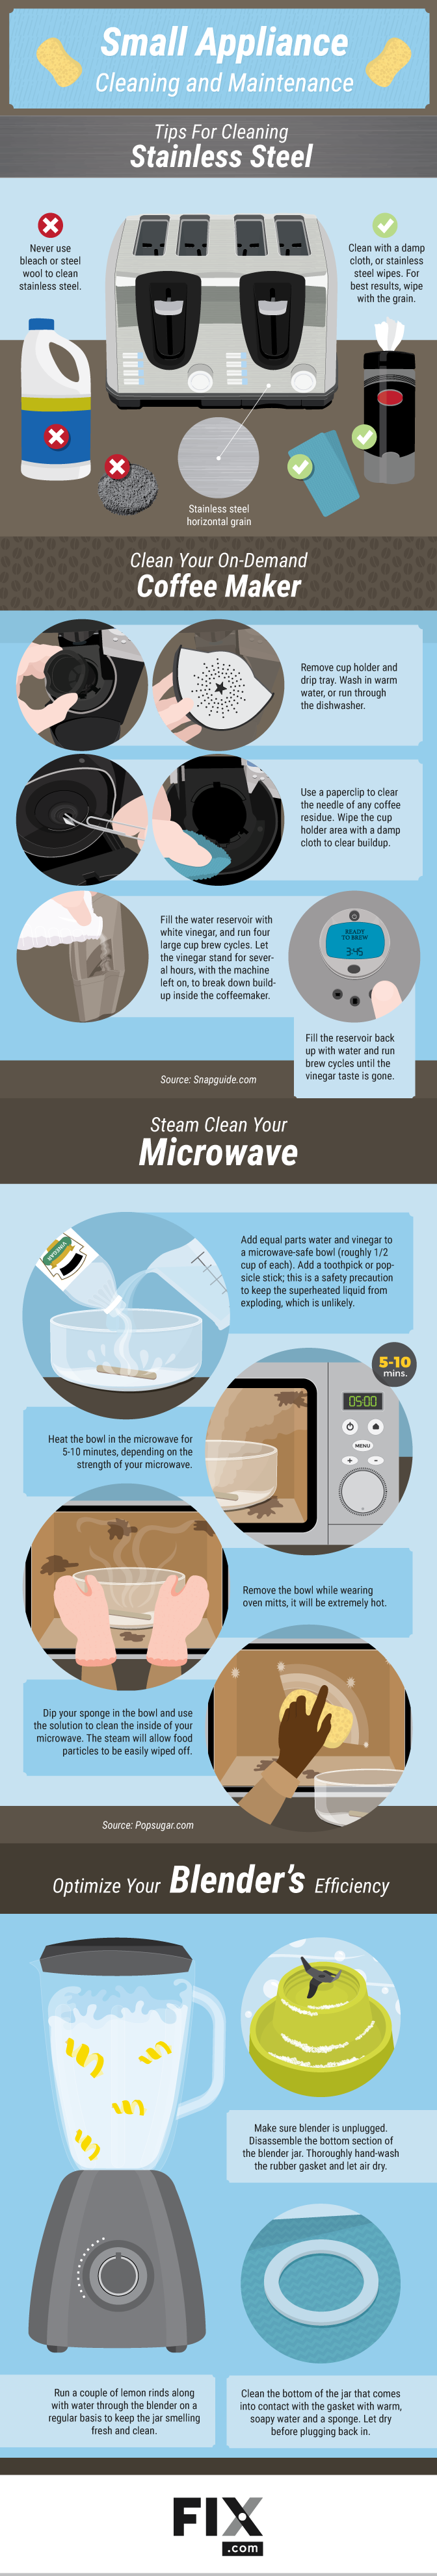 Small Appliance Maintenance and Optimization #infographic